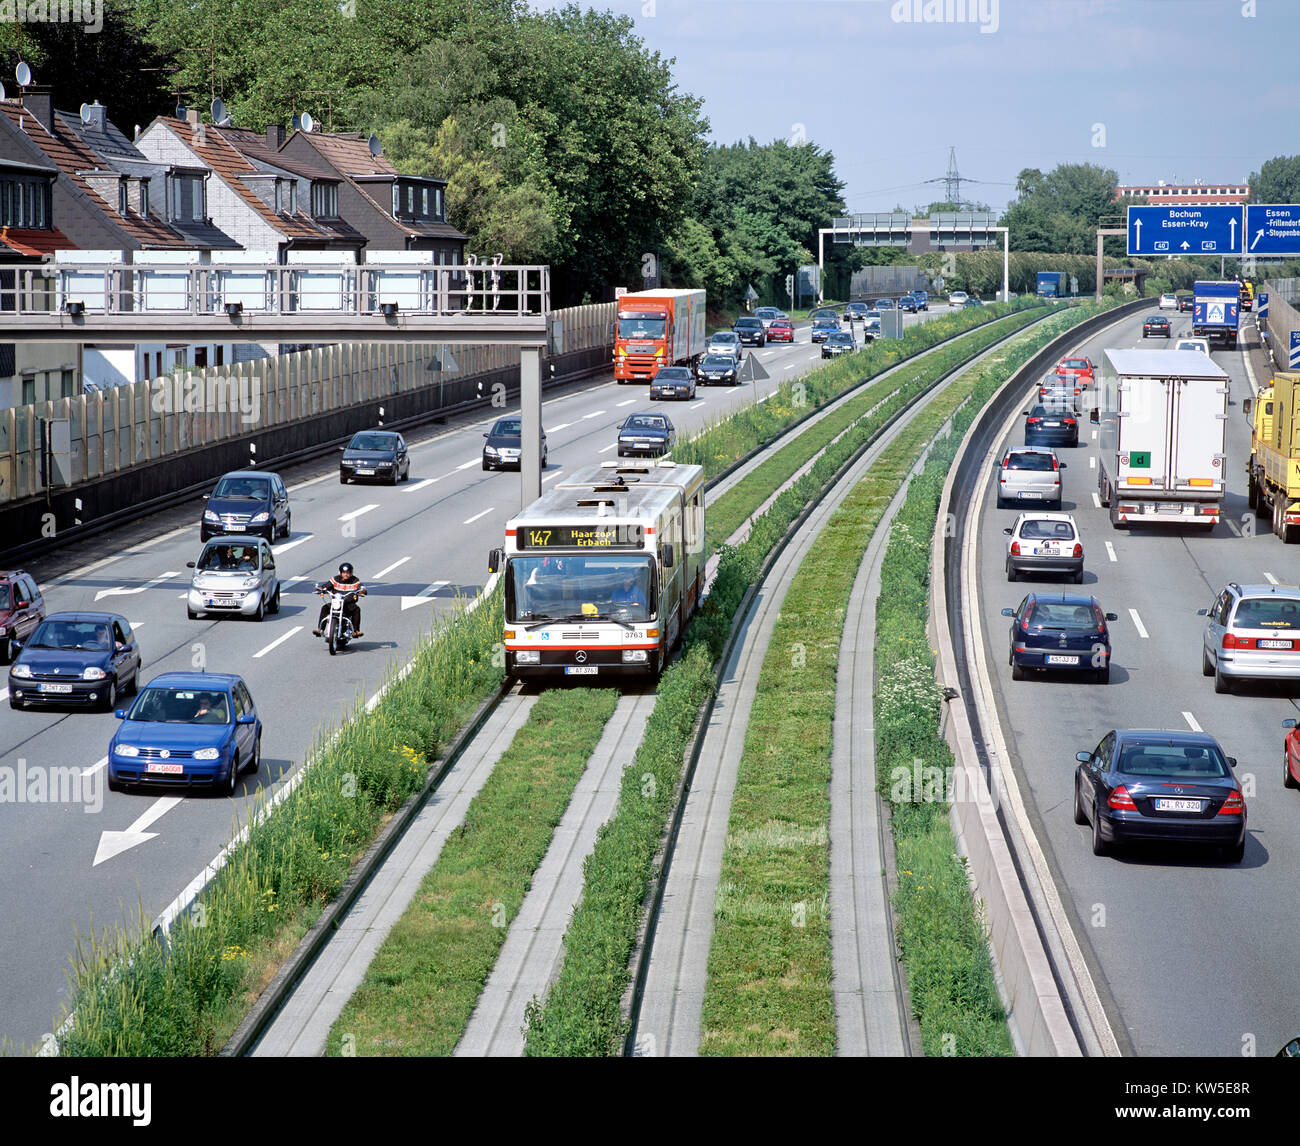 An O-Bahn 'guided bus' in its concrete guideway in the middle of a dual carriageway road, Essen, Germany. - Stock Image